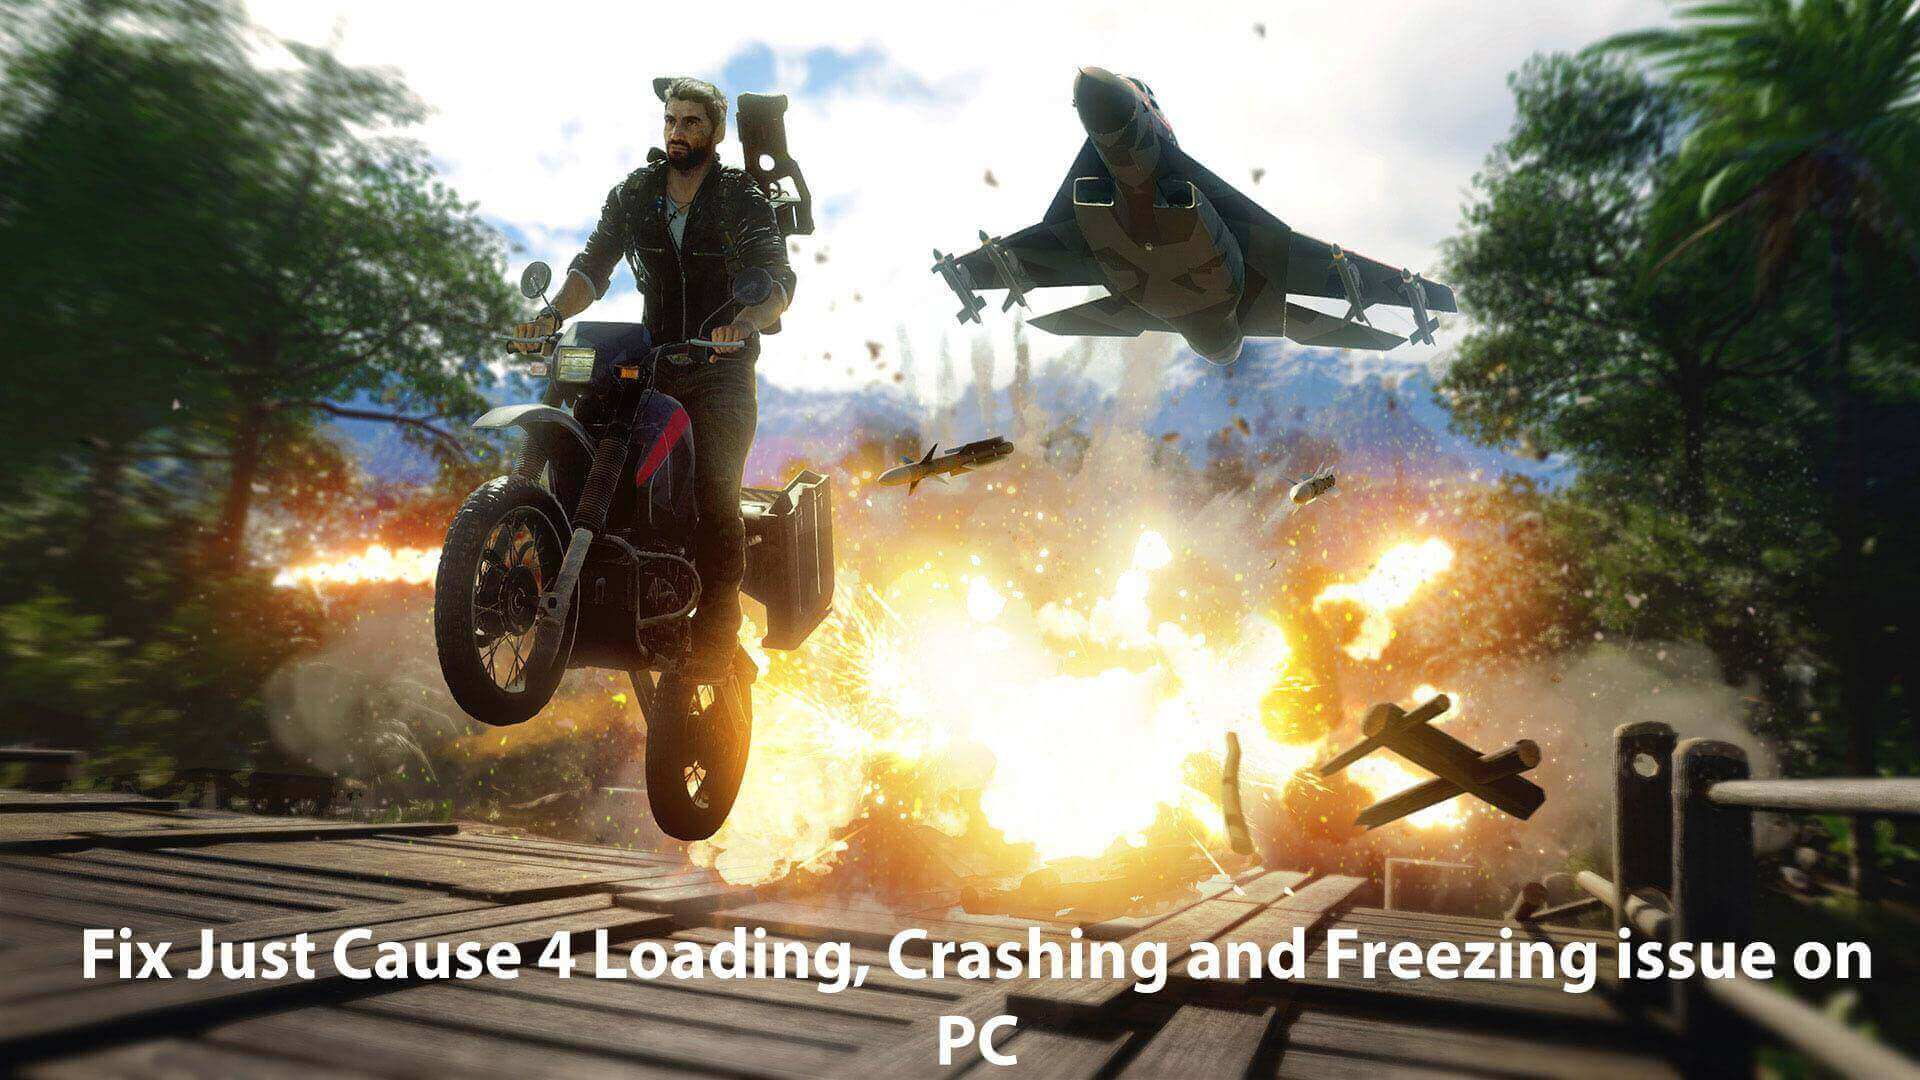 Fix Just Cause 4 Loading, Crashing and Freezing issue on PC